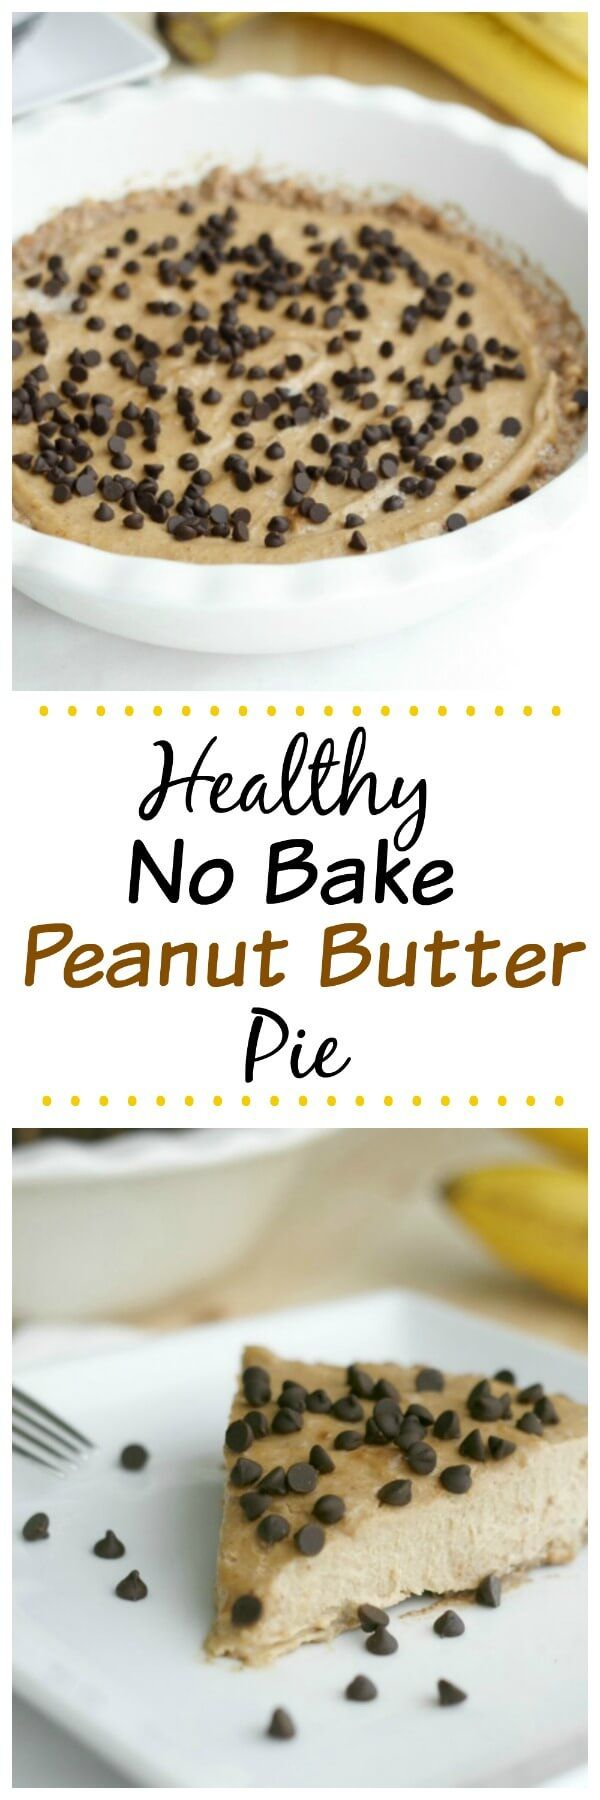 Healthy No Bake Peanut Butter Pie. A simple and delicious recipe made with clean eating ingredients. Gluten free, vegan, and 21 Day Fix approved.